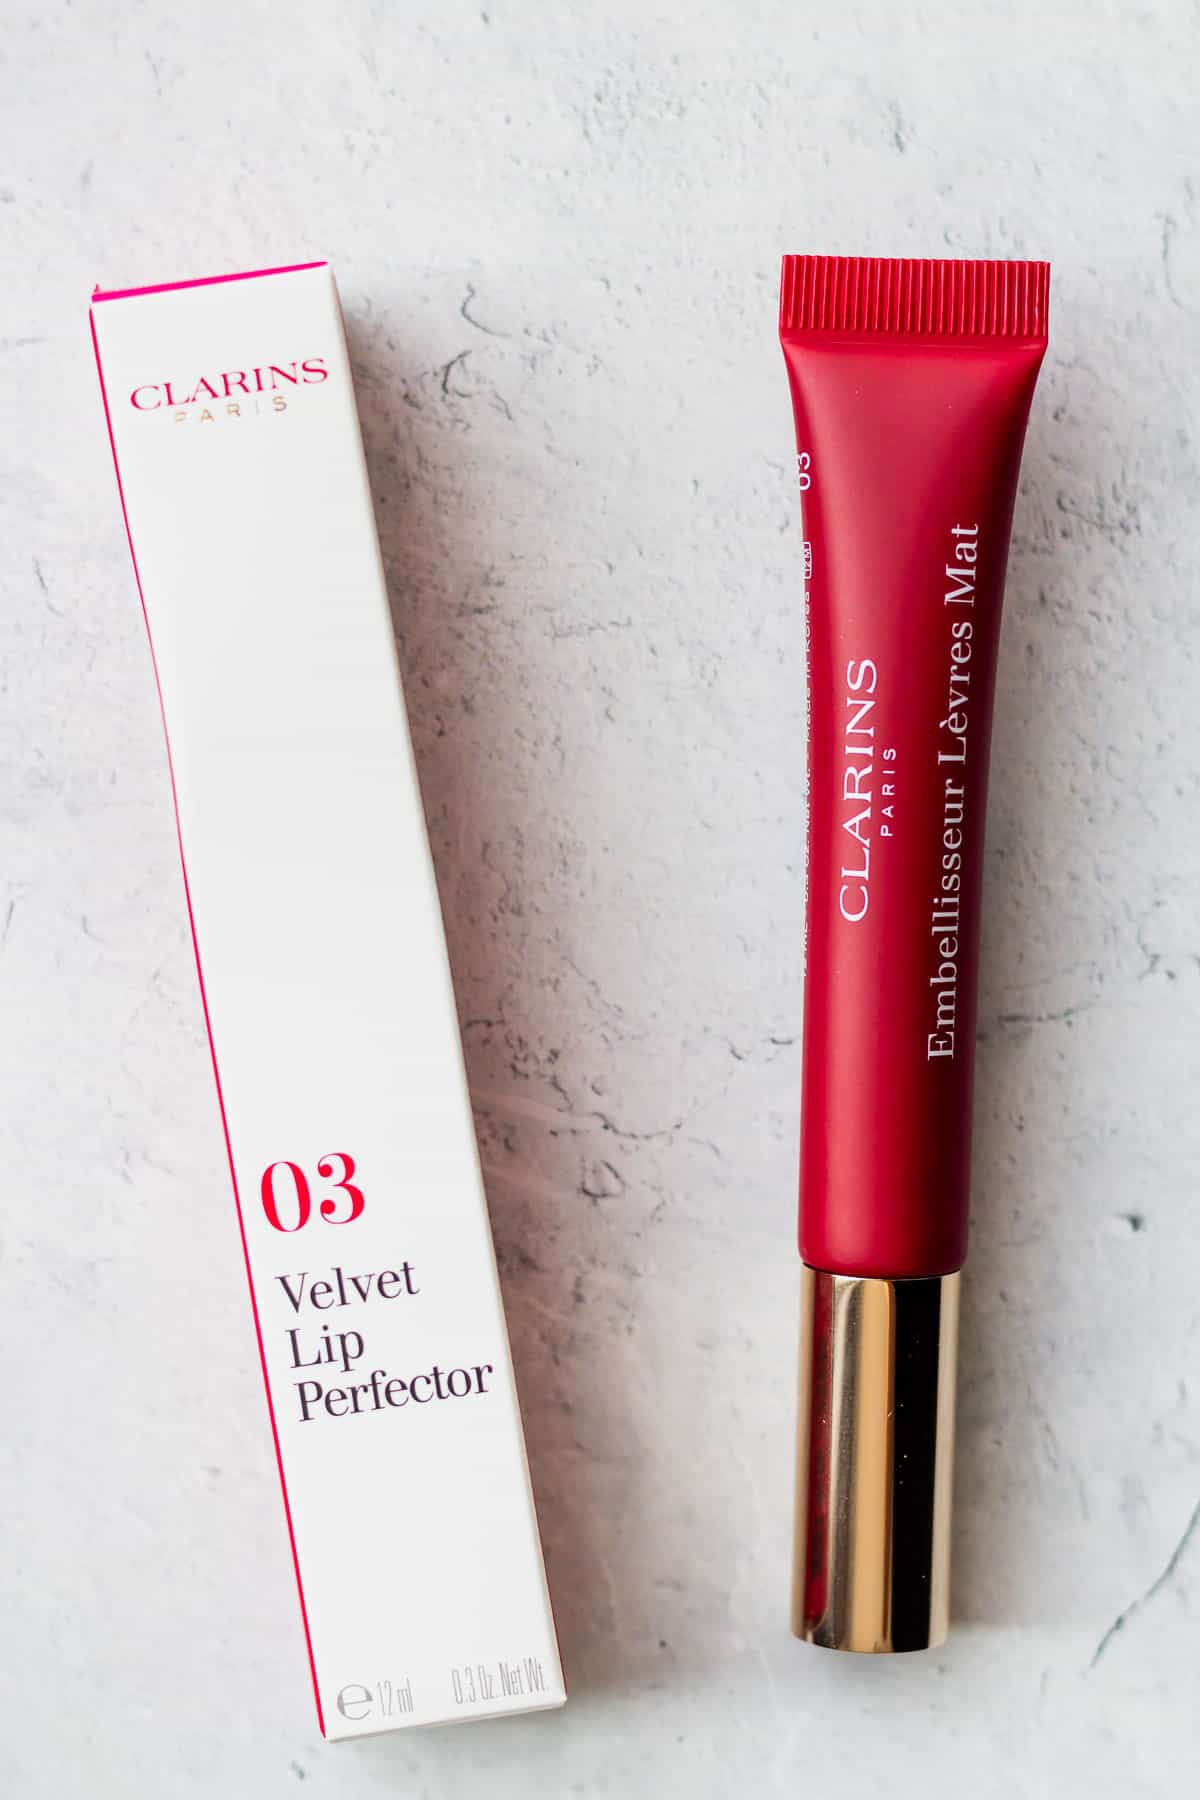 Clarins Velvet Lip Perfector in red